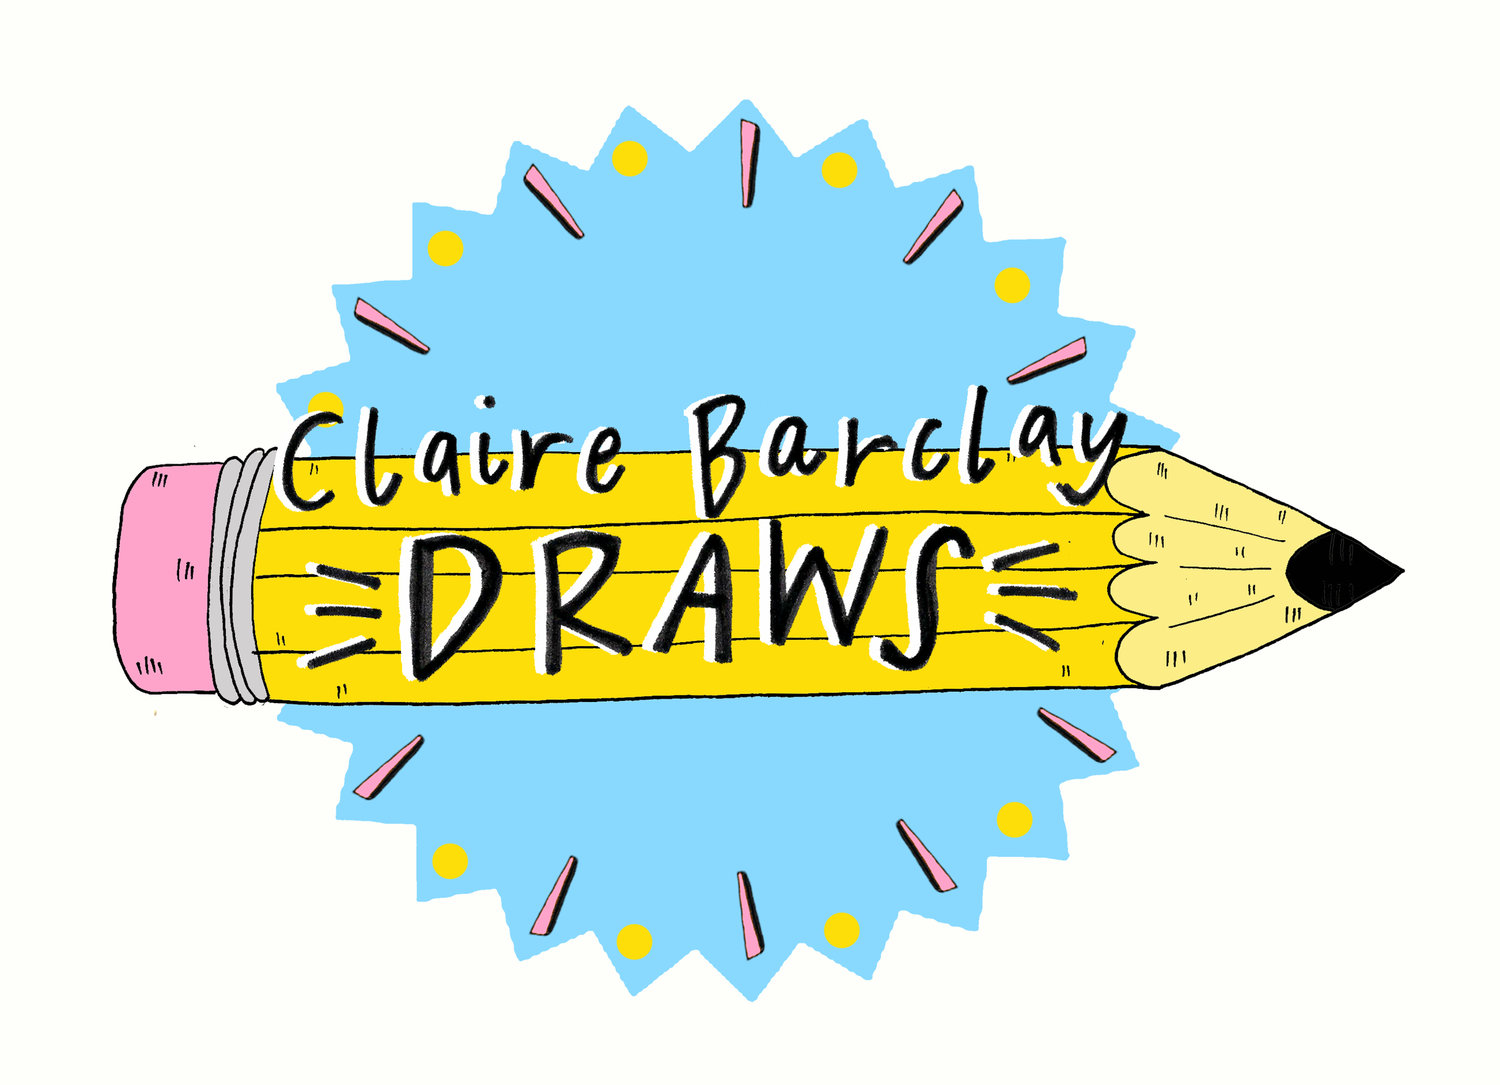 Claire Barclay Draws